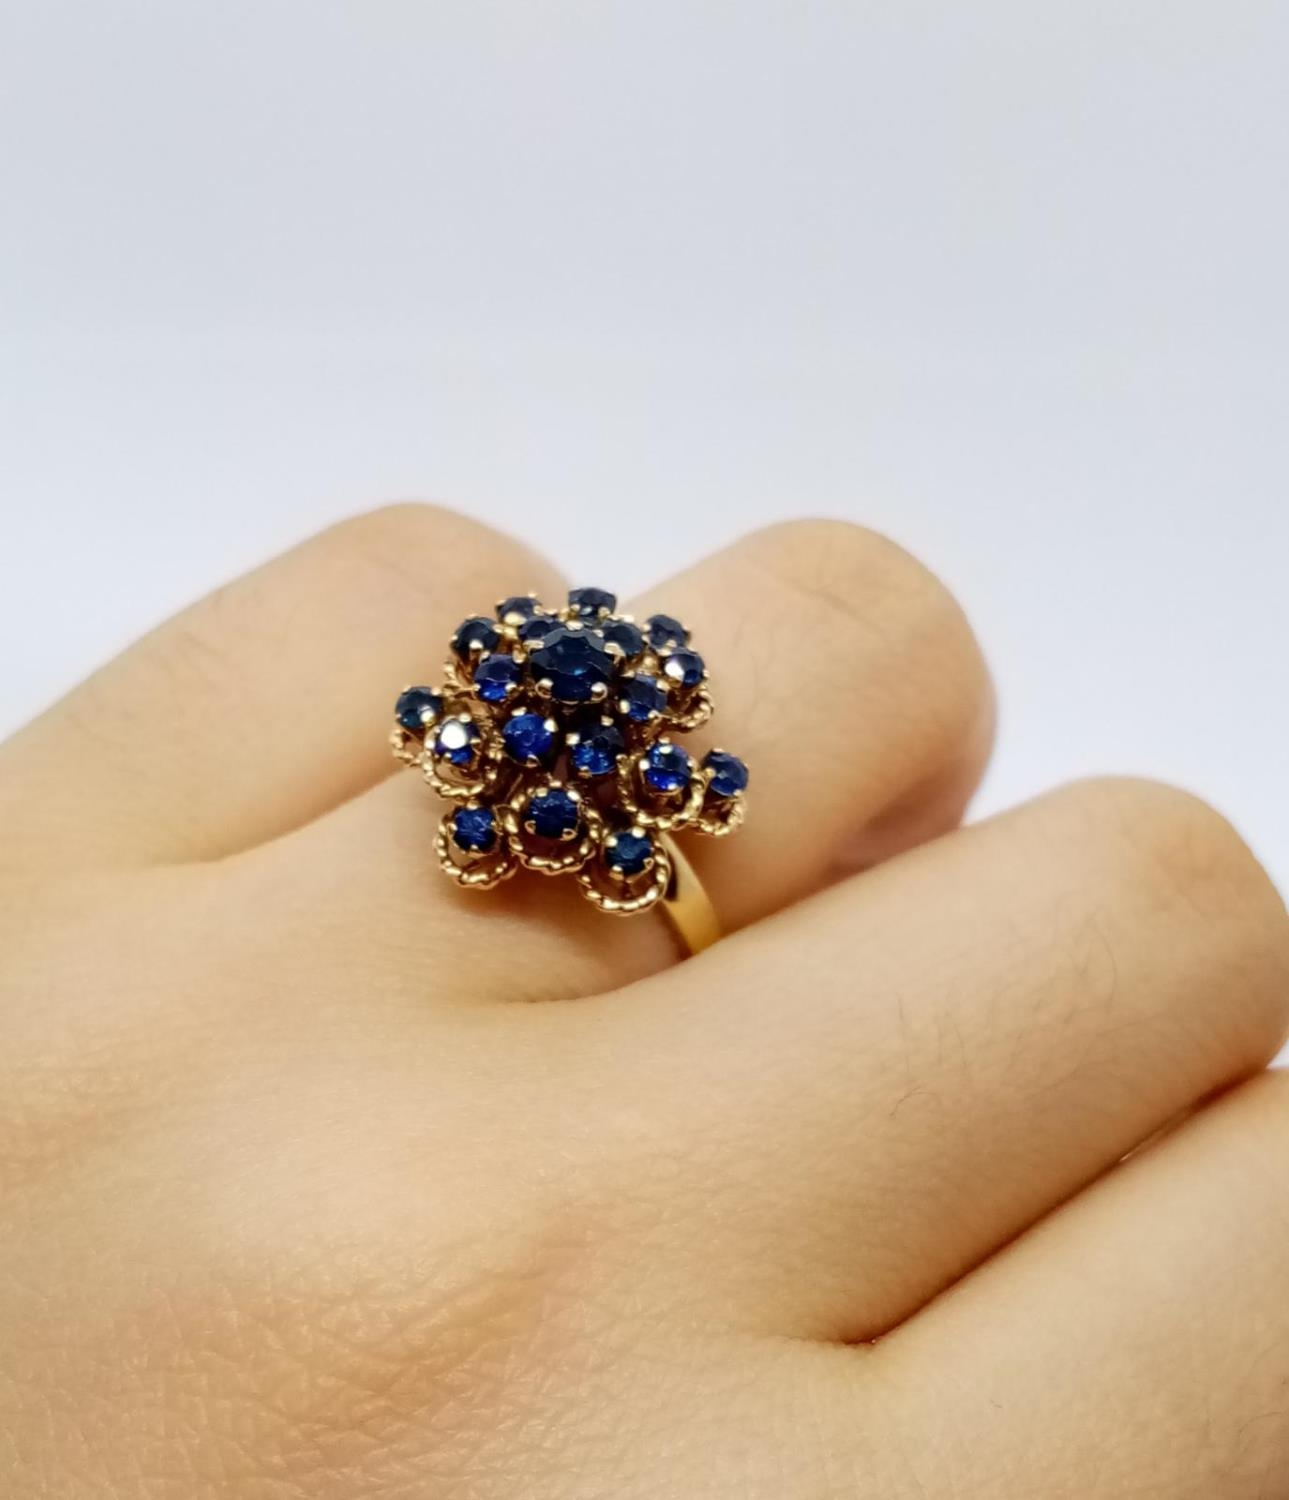 14ct Sapphire Cluster RING. 4.9g Size L. - Image 5 of 7